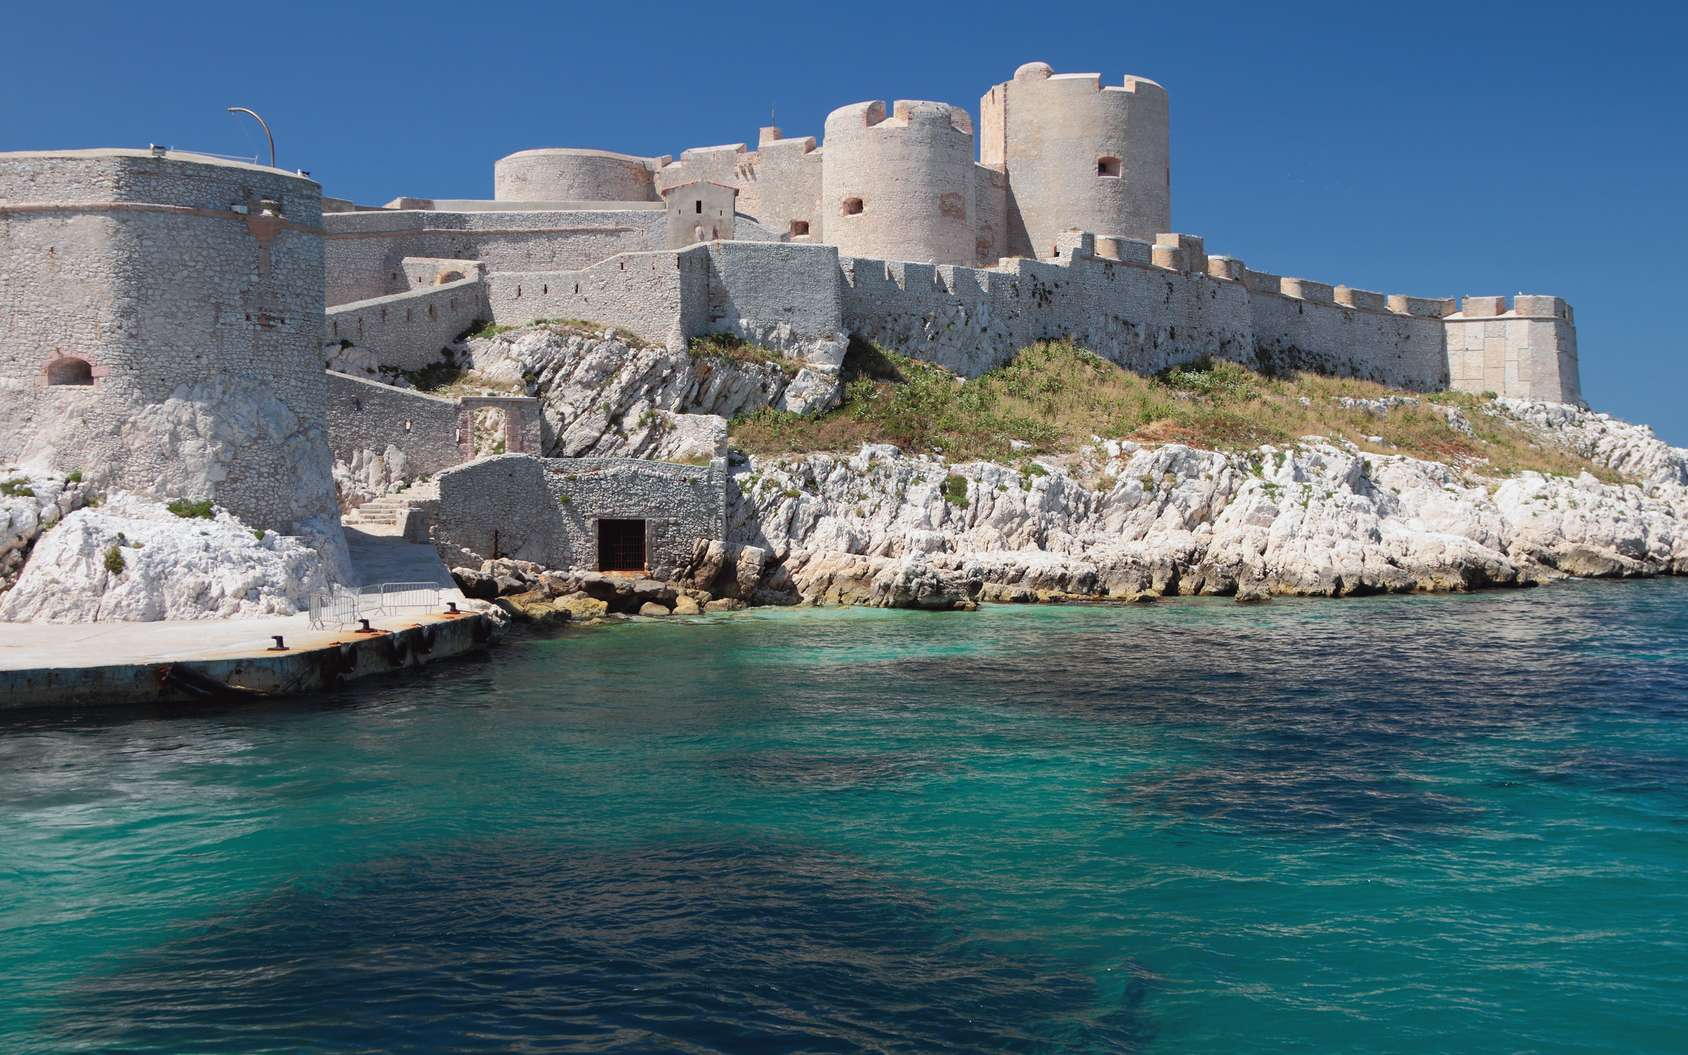 10382d0f11_123551_chateau-if-marseille-z